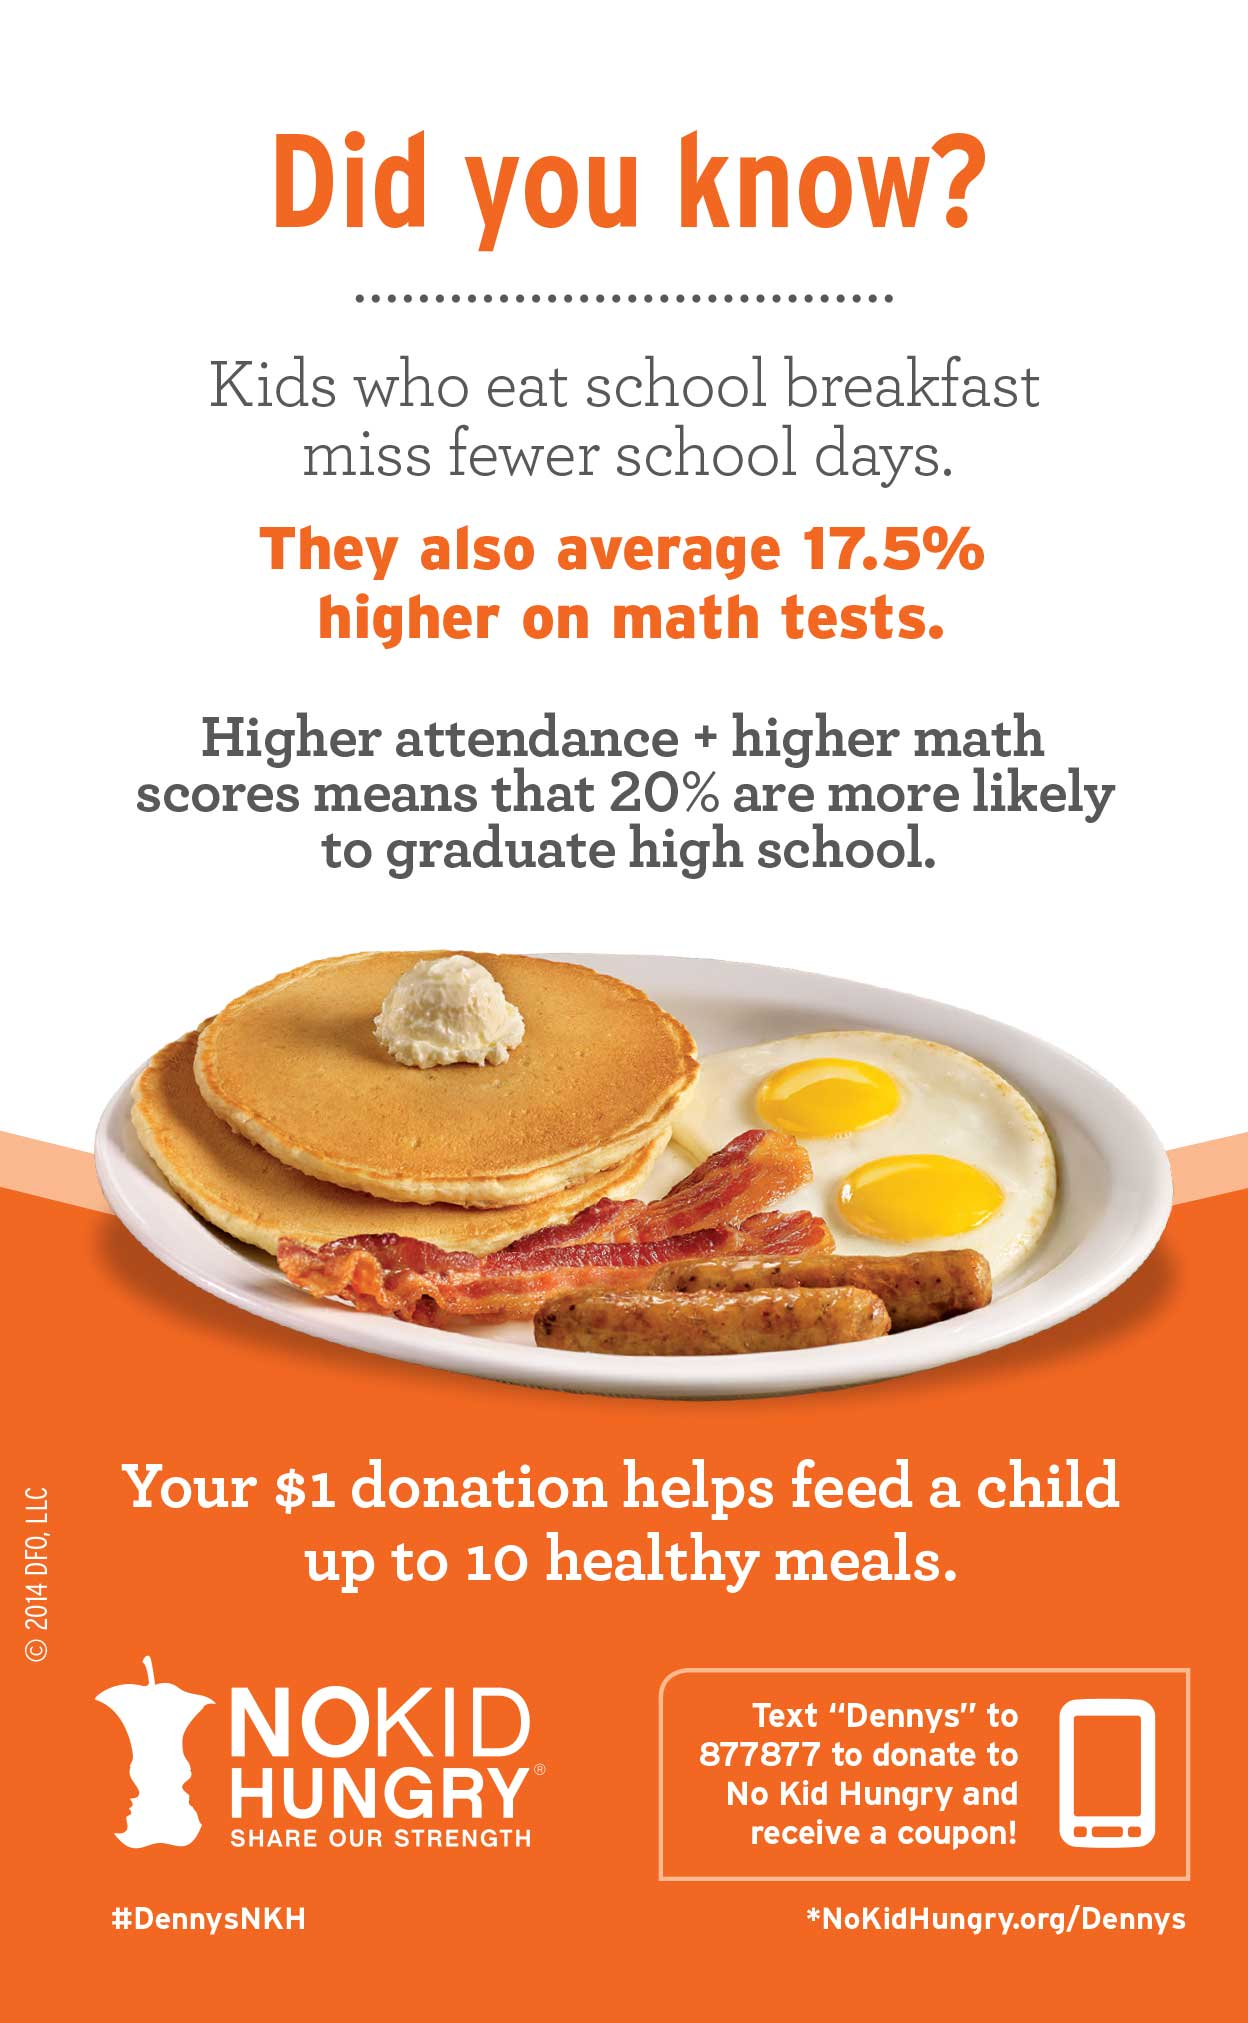 "1 in 5 kids struggle with hunger in the U.S. Text ""Dennys"" to 877877 to donate to No Kid Hungry and receive a coupon worth $5 off your next meal a..."